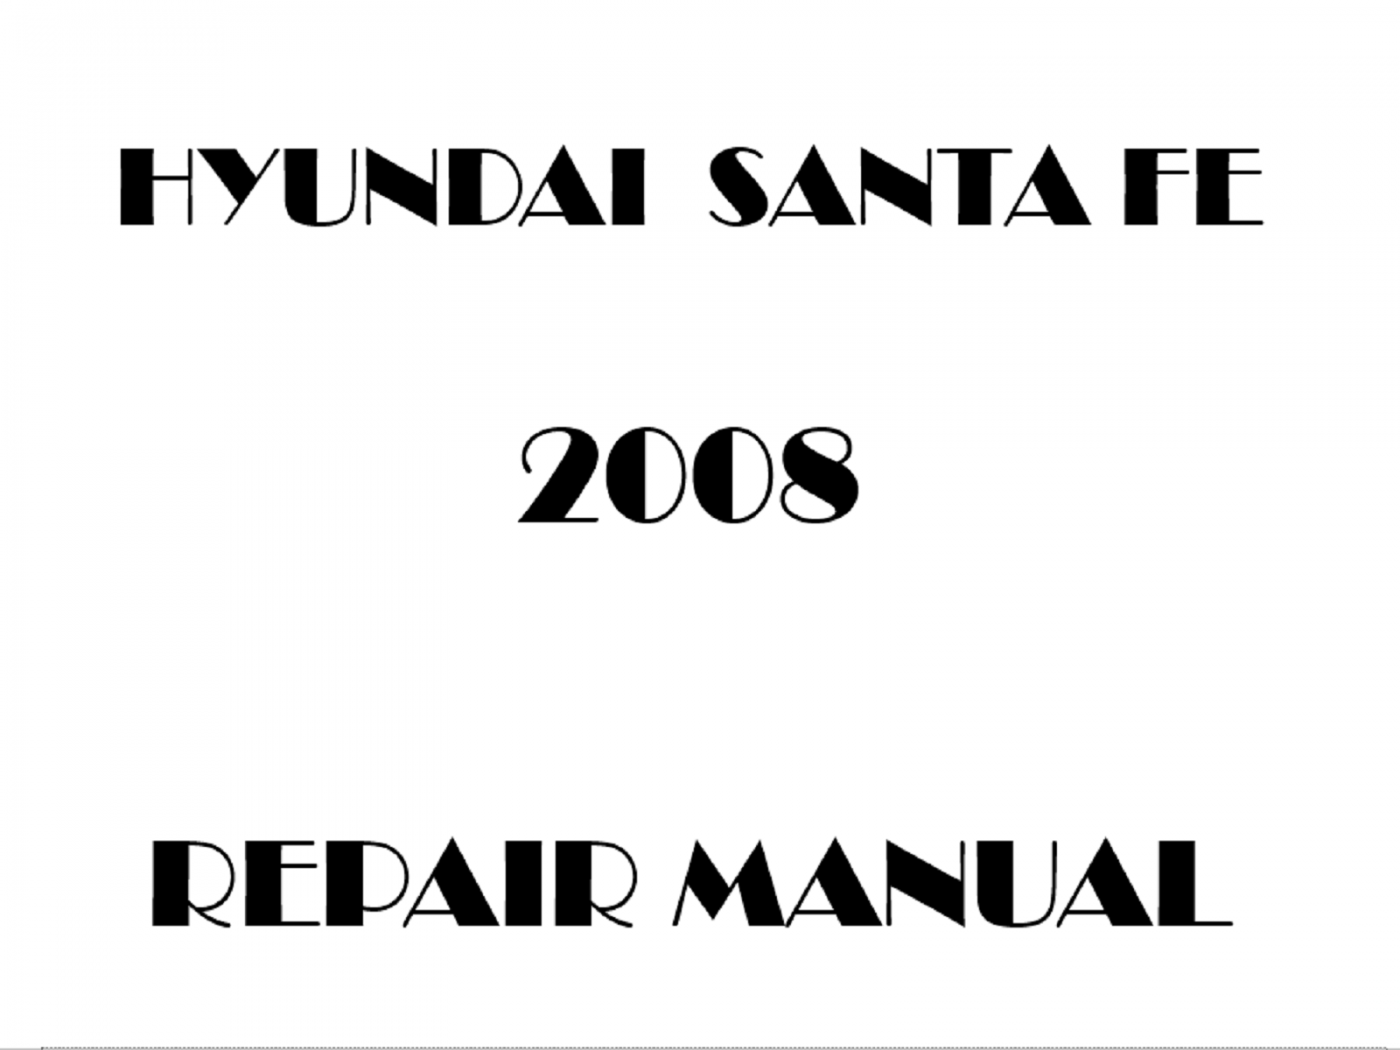 2008 Hyundai Santa Fe repair manual